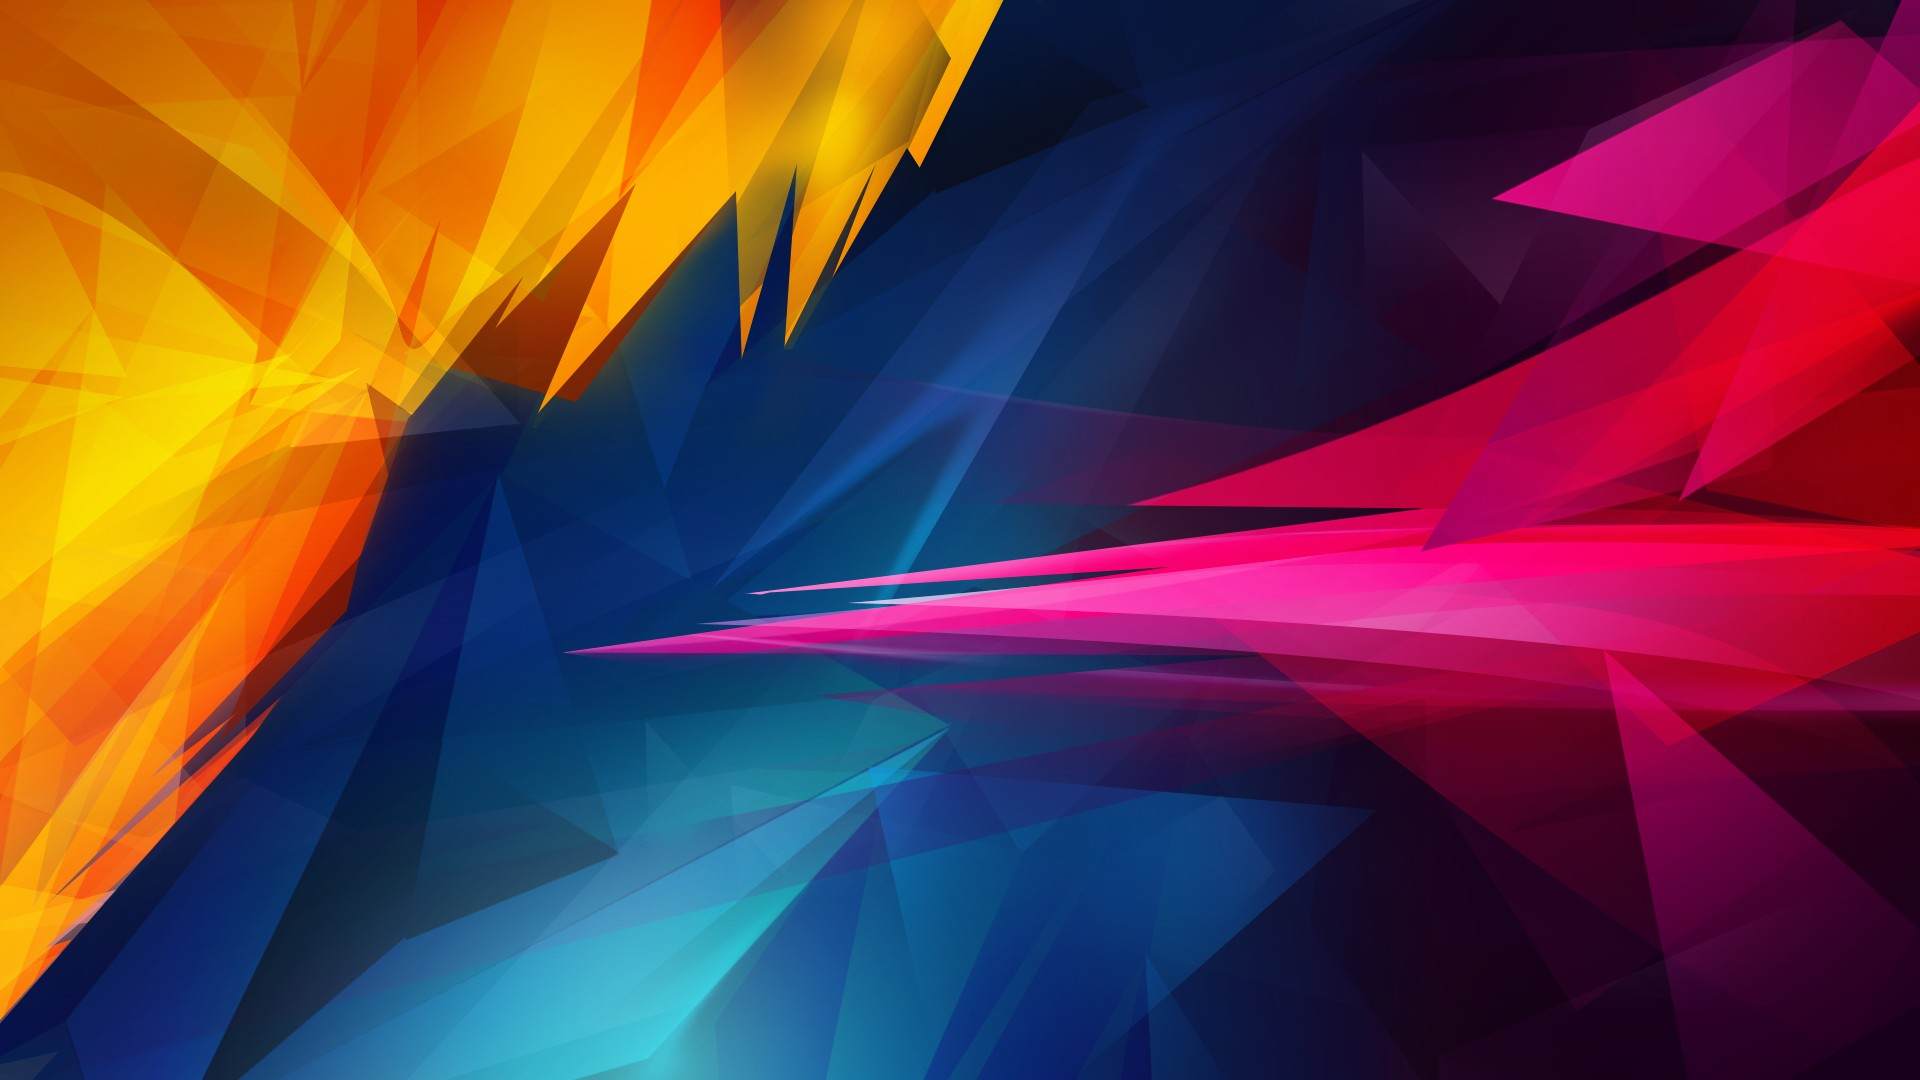 Abstract Backgrounds 1920x1080 Free Download